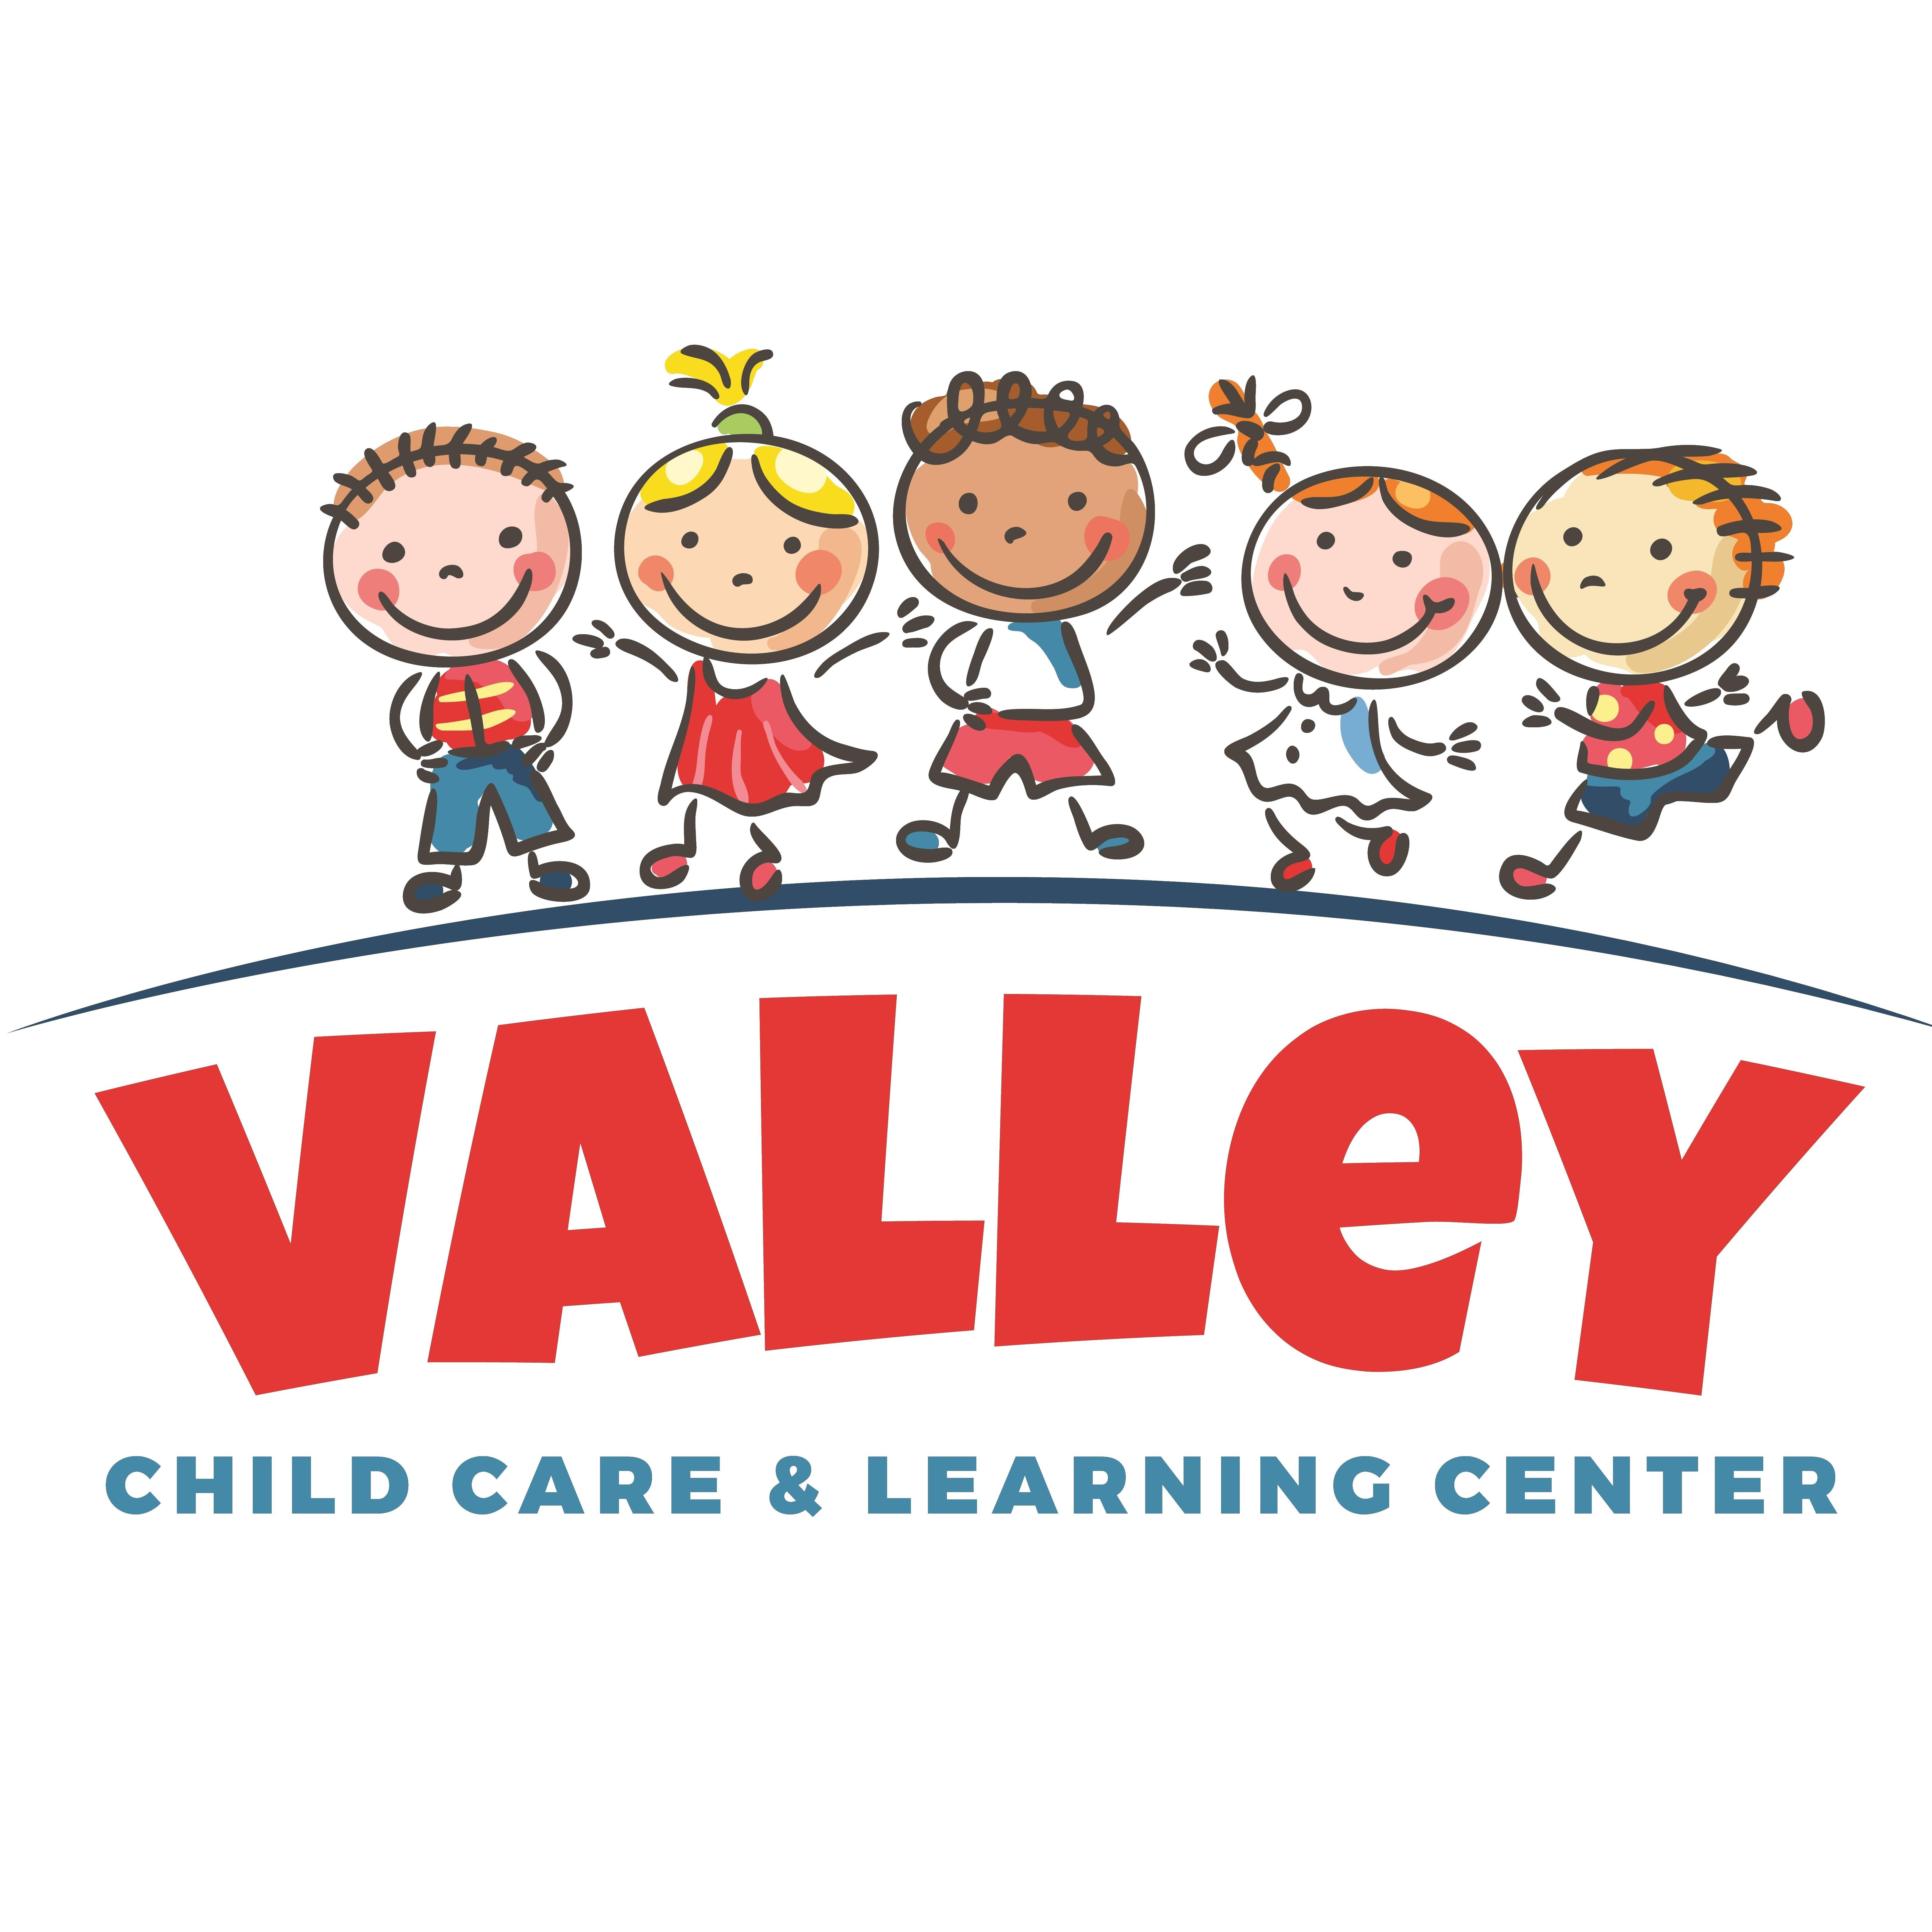 Valley Child Care & Learning Center - North Phoenix